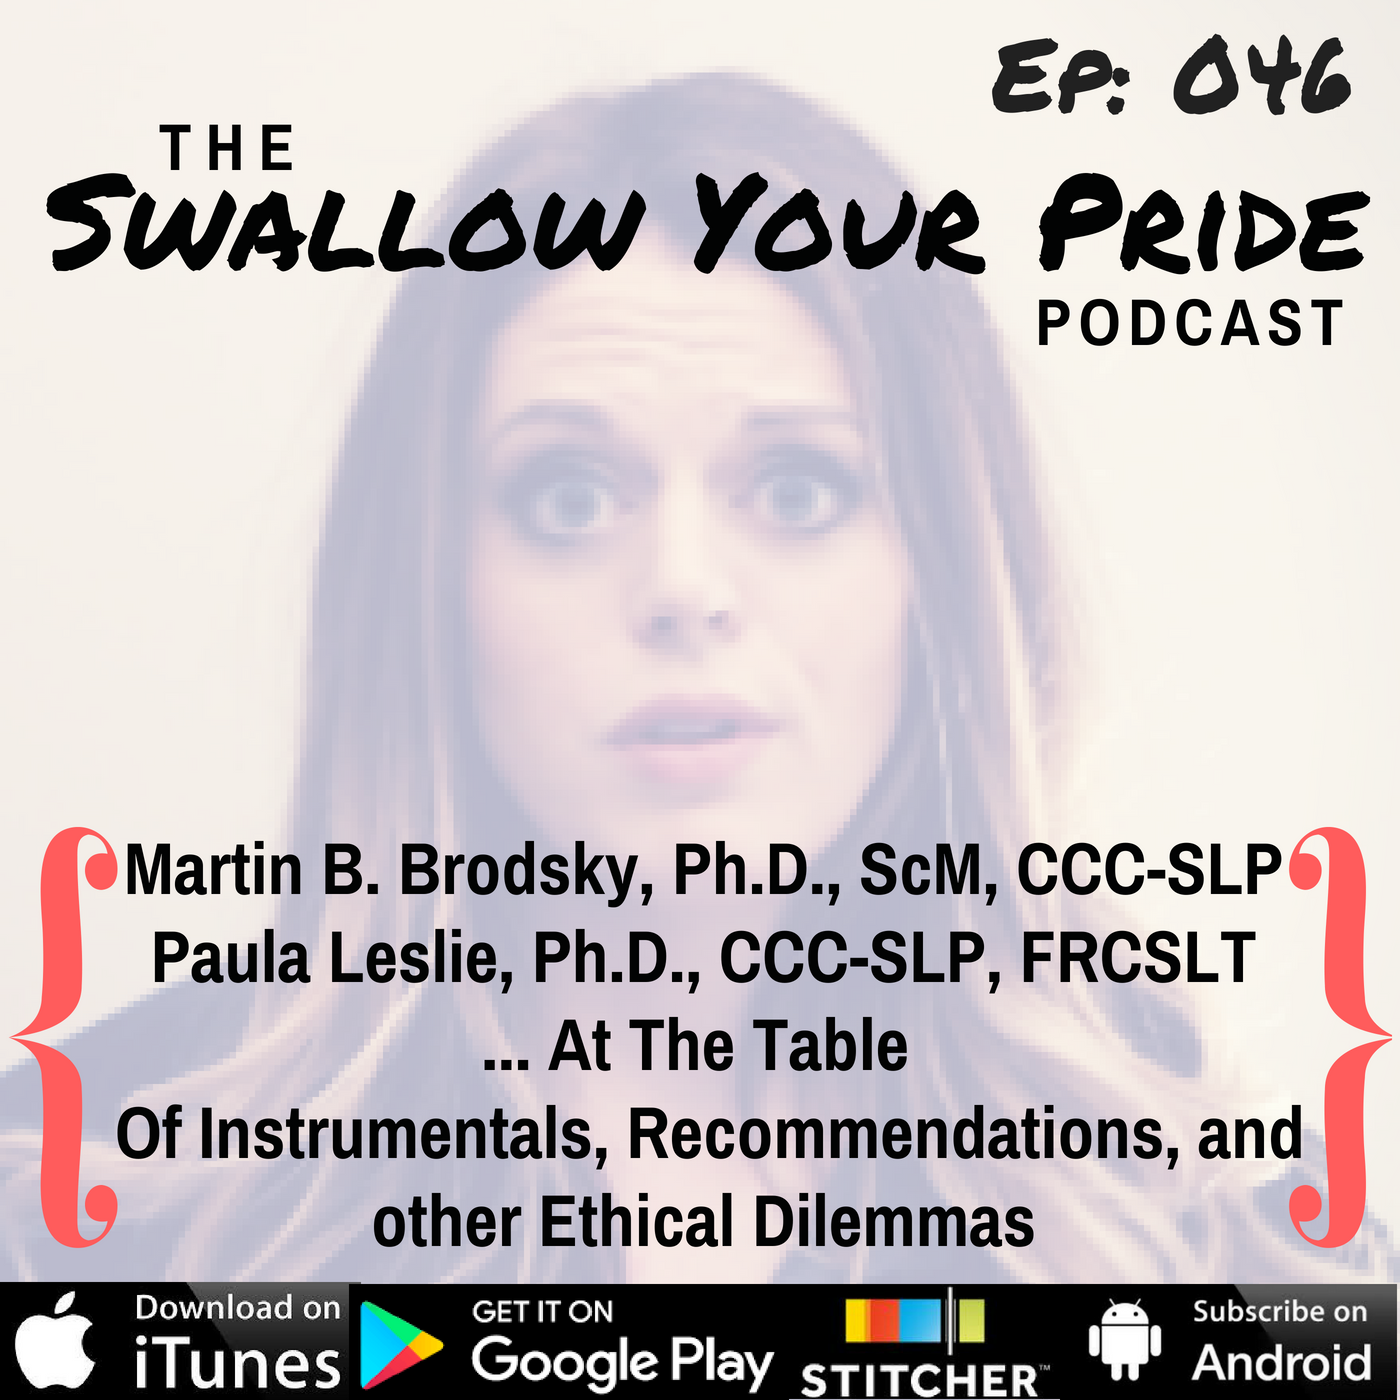 046 – Martin B. Brodsky, Ph.D., ScM, CCC-SLP  and Paula Leslie, Ph.D., CCC-SLP, FRCSLT … At The Table Of Instrumentals, Recommendations, and other Ethical Dilemmas